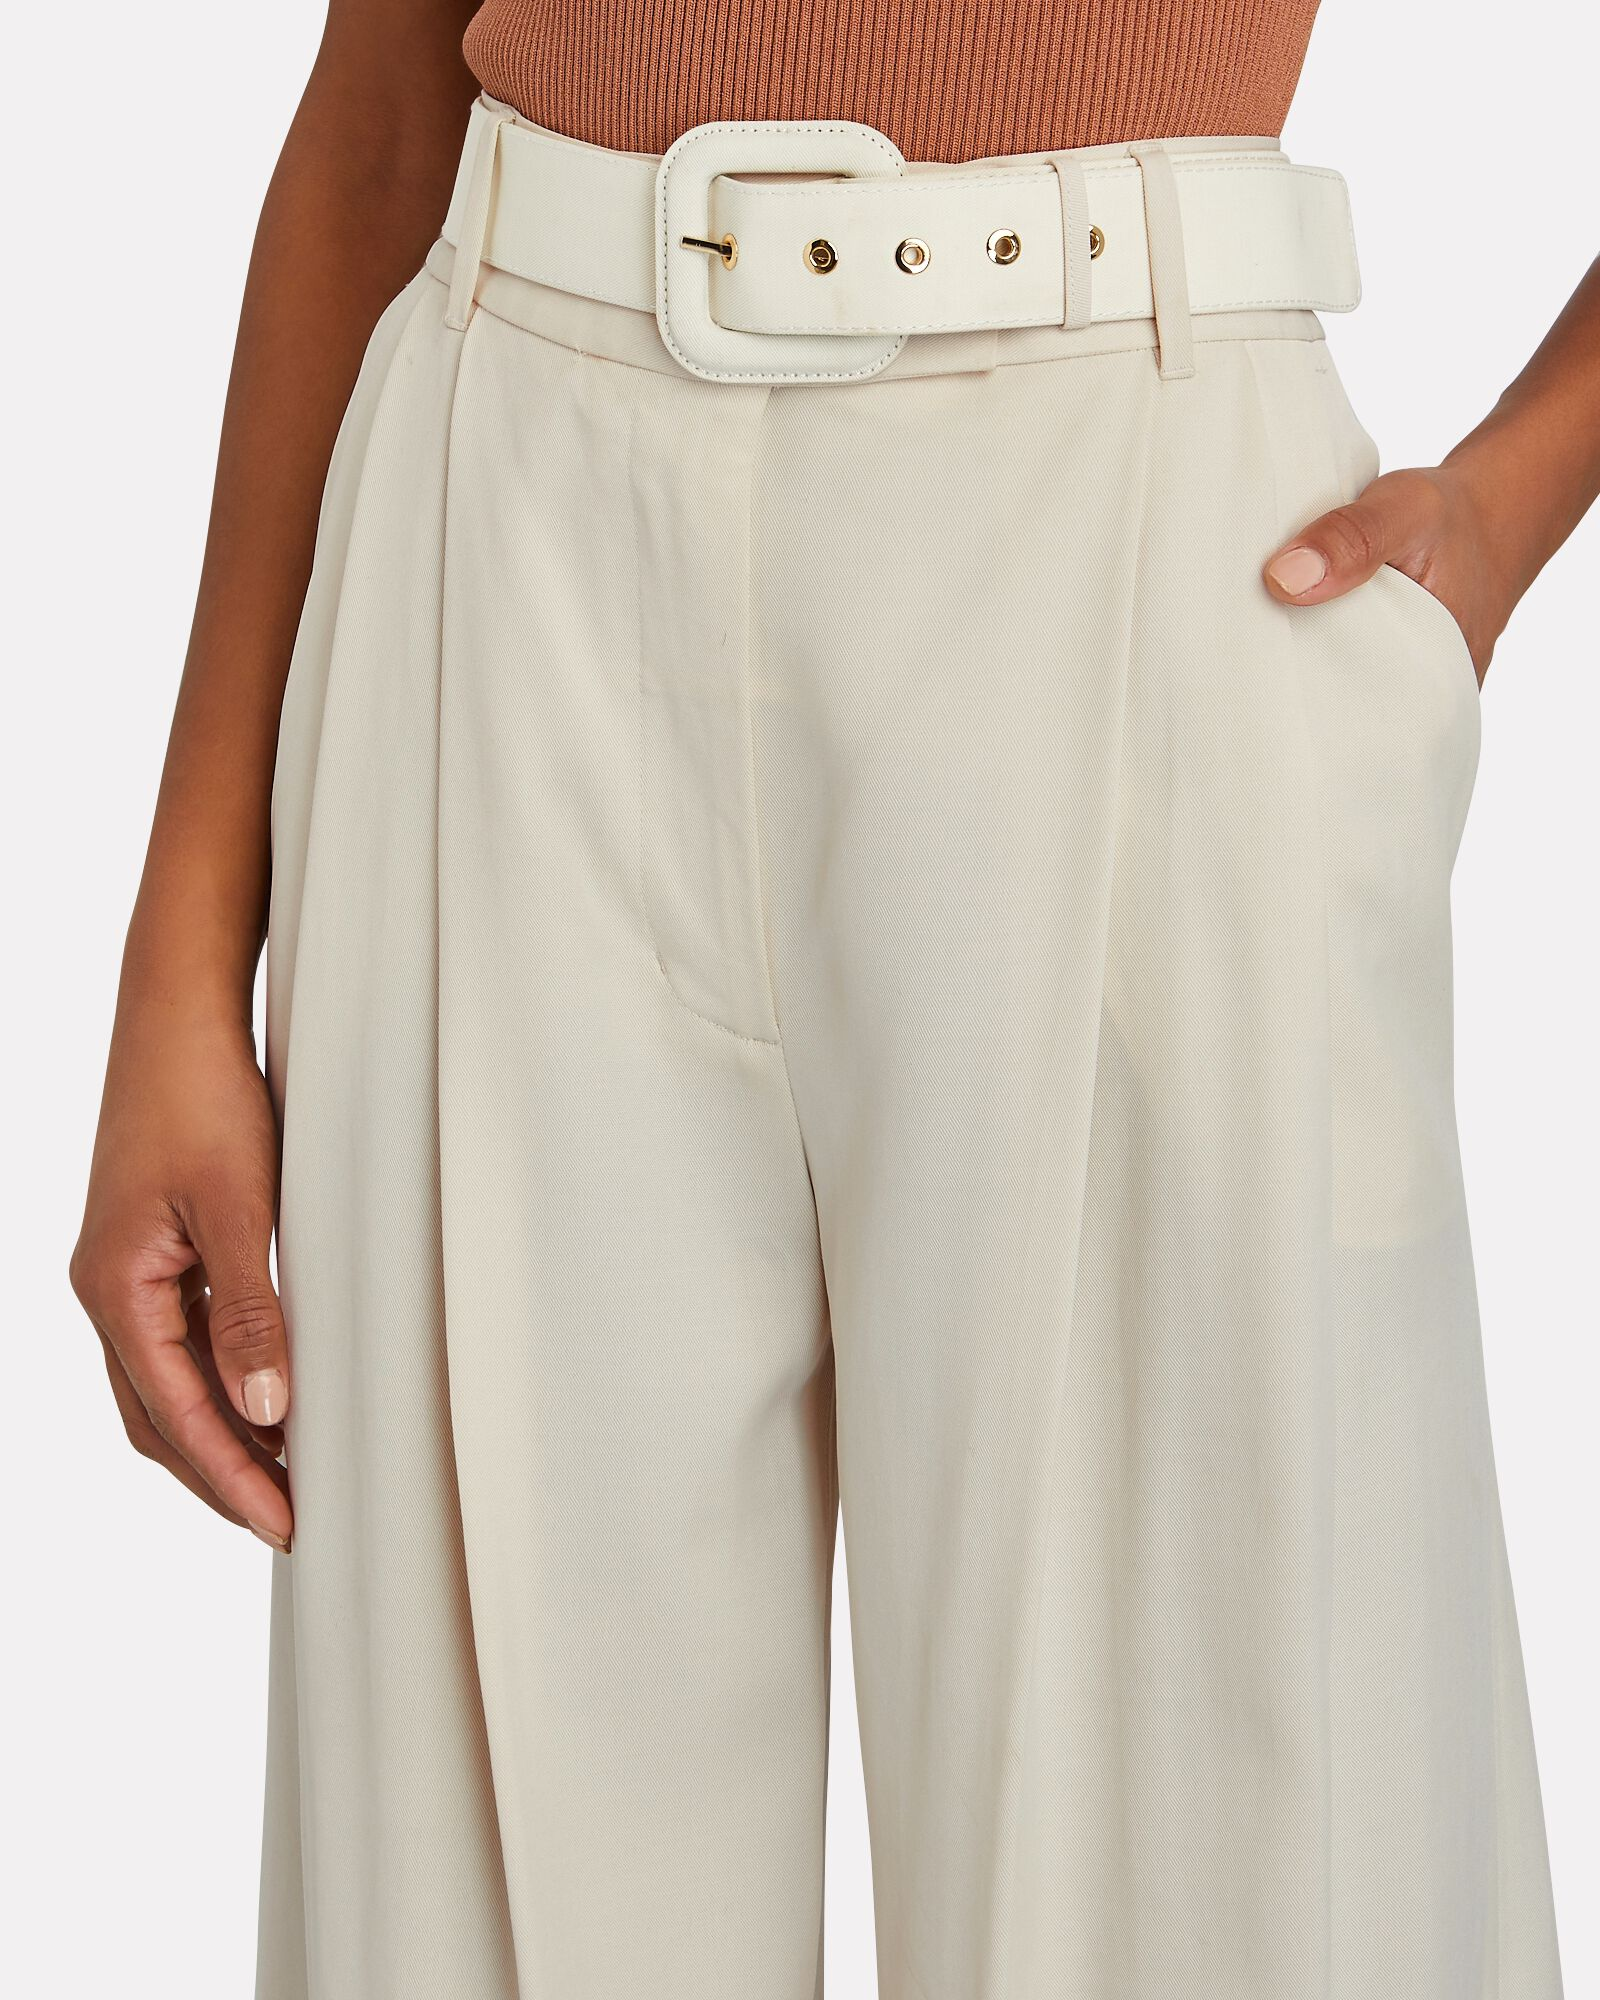 Botanica Belted Wide-Leg Trousers, IVORY, hi-res